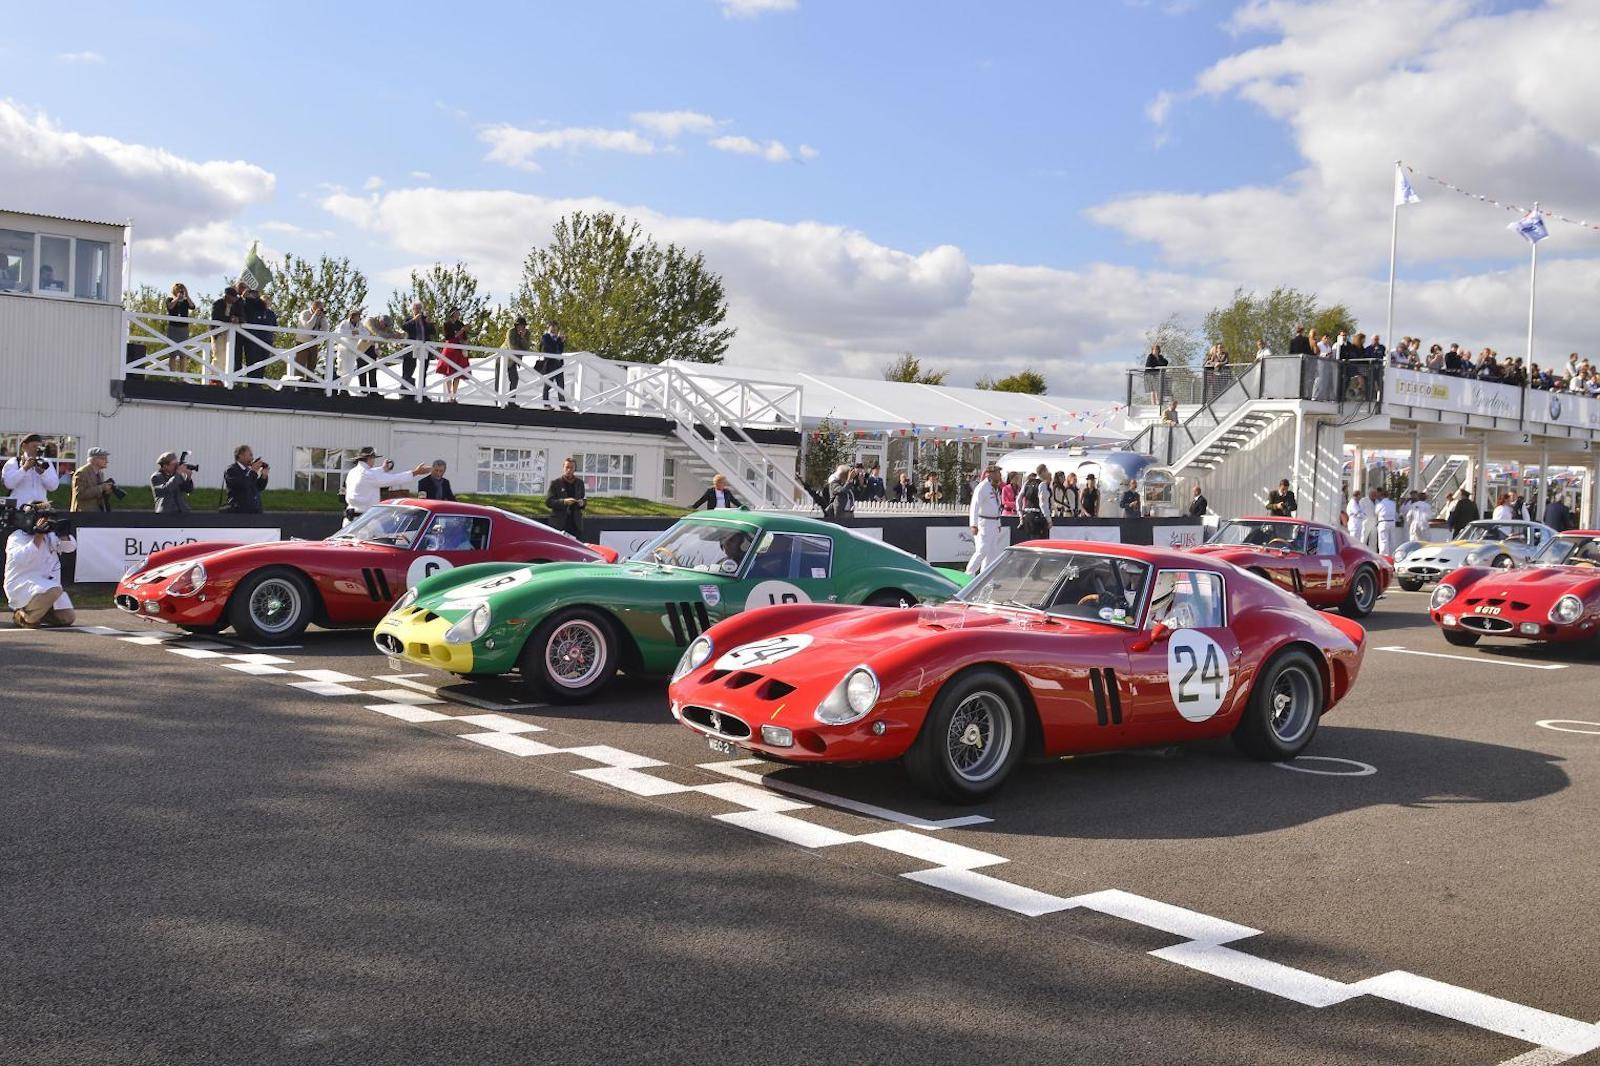 The 10 best classic car events in the world | Autoclassics.com